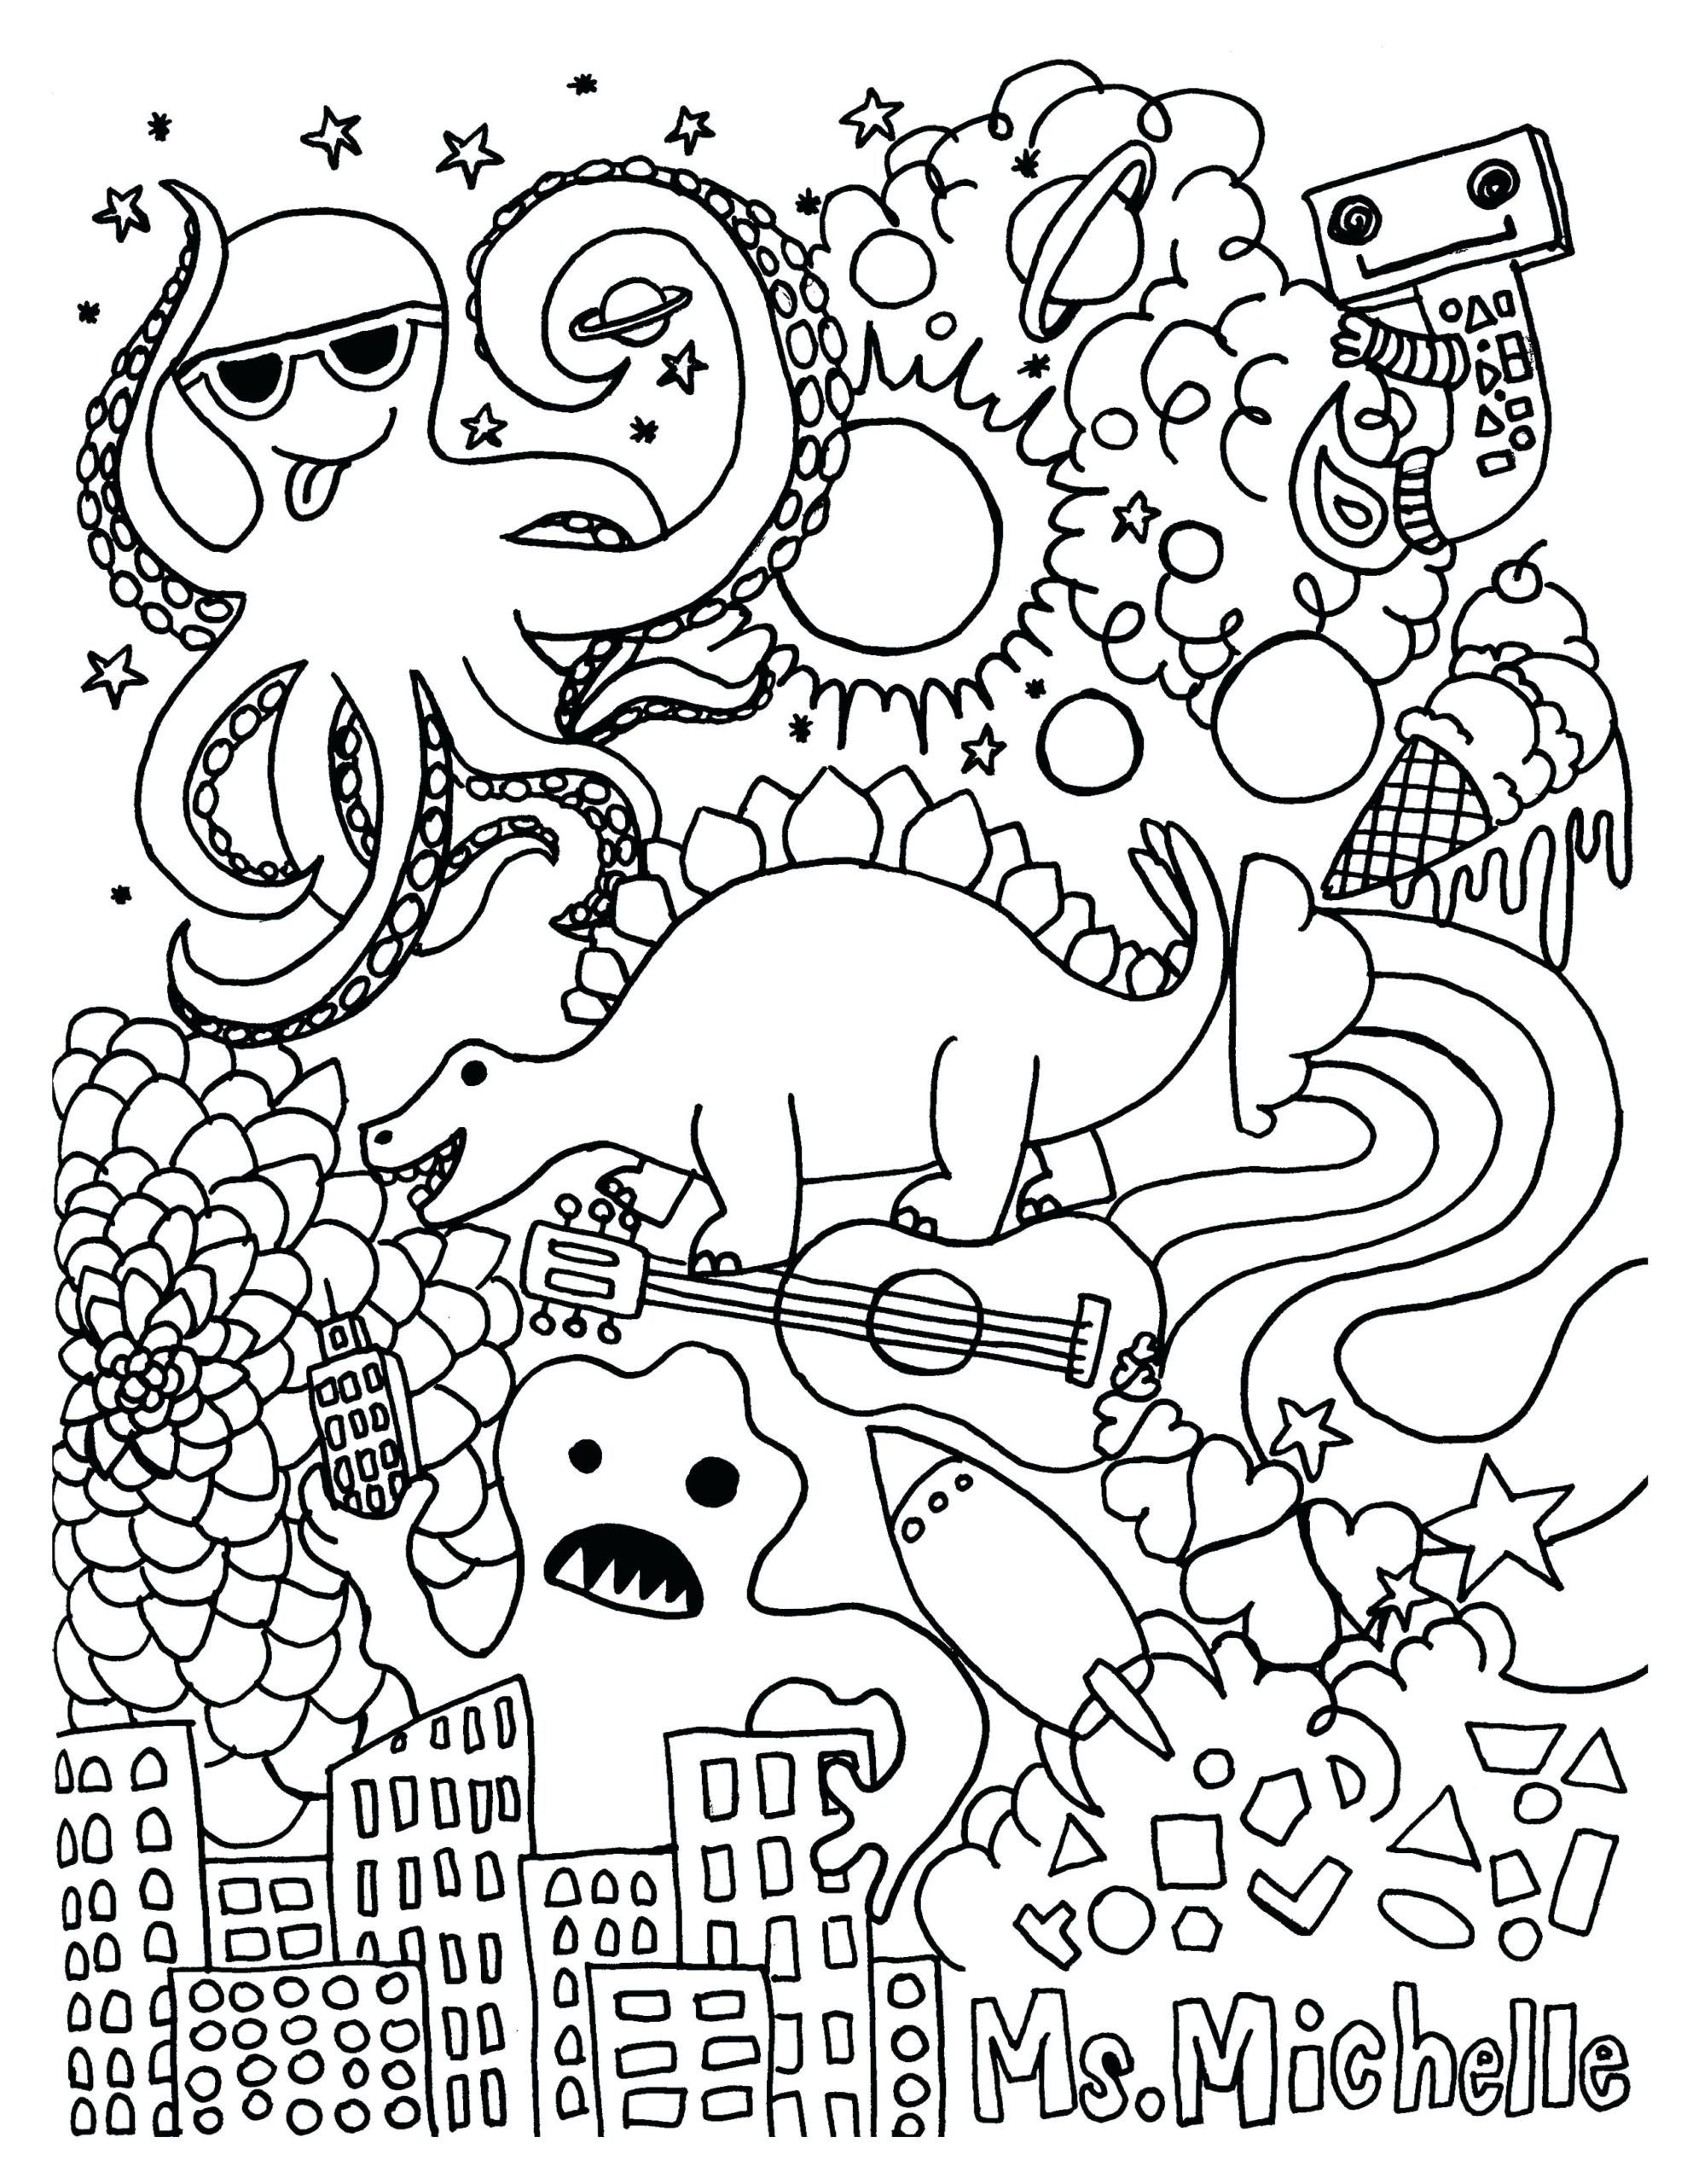 3 Free Math Coloring Worksheet.pdf in 3  Coloring pages